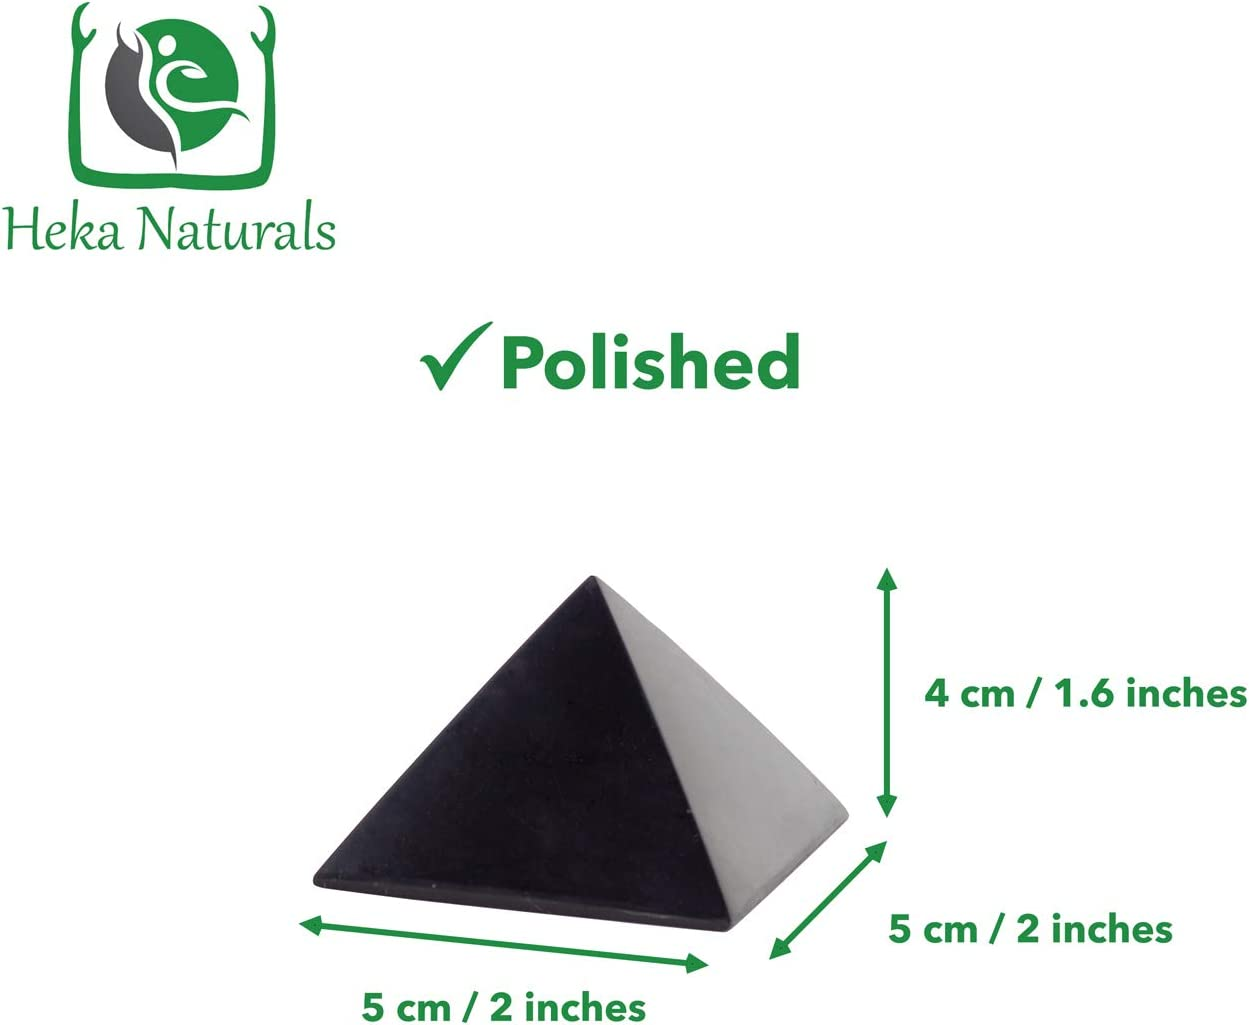 4 Inch Pyramid Authentic Anti-Radiation Shungite Stone Figures from Karelia Polished Shungite Pyramid 4 Inches Polished Contains Fullerenes for EMF Protection Russia